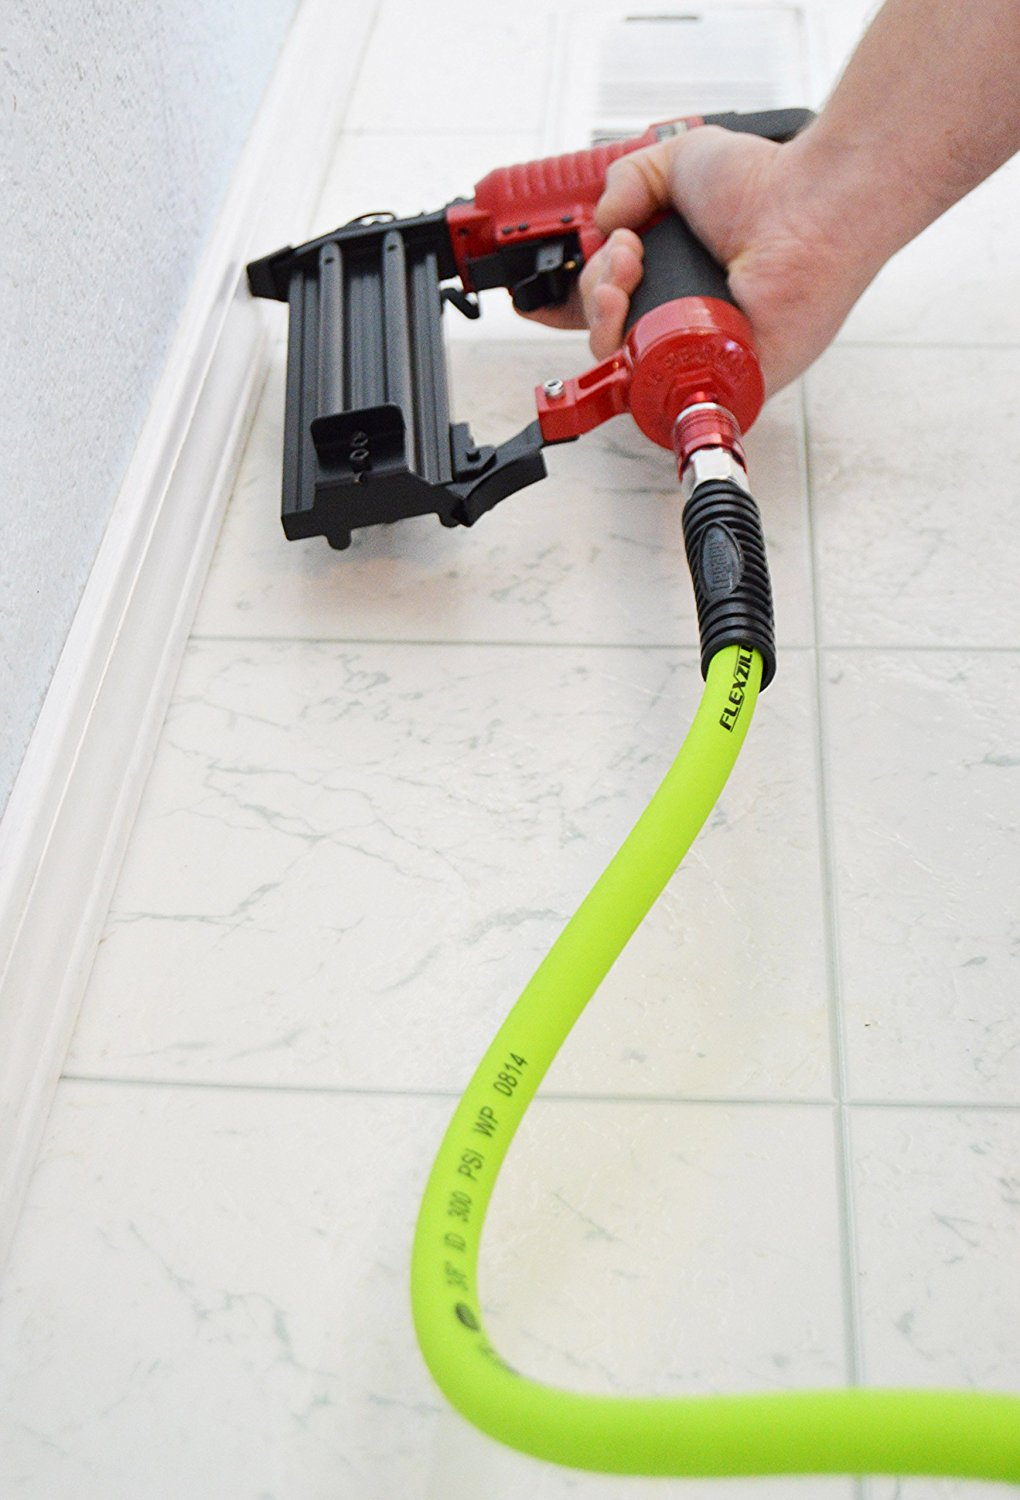 Action shot of Flexzilla hybrid air hose being used with nail gun